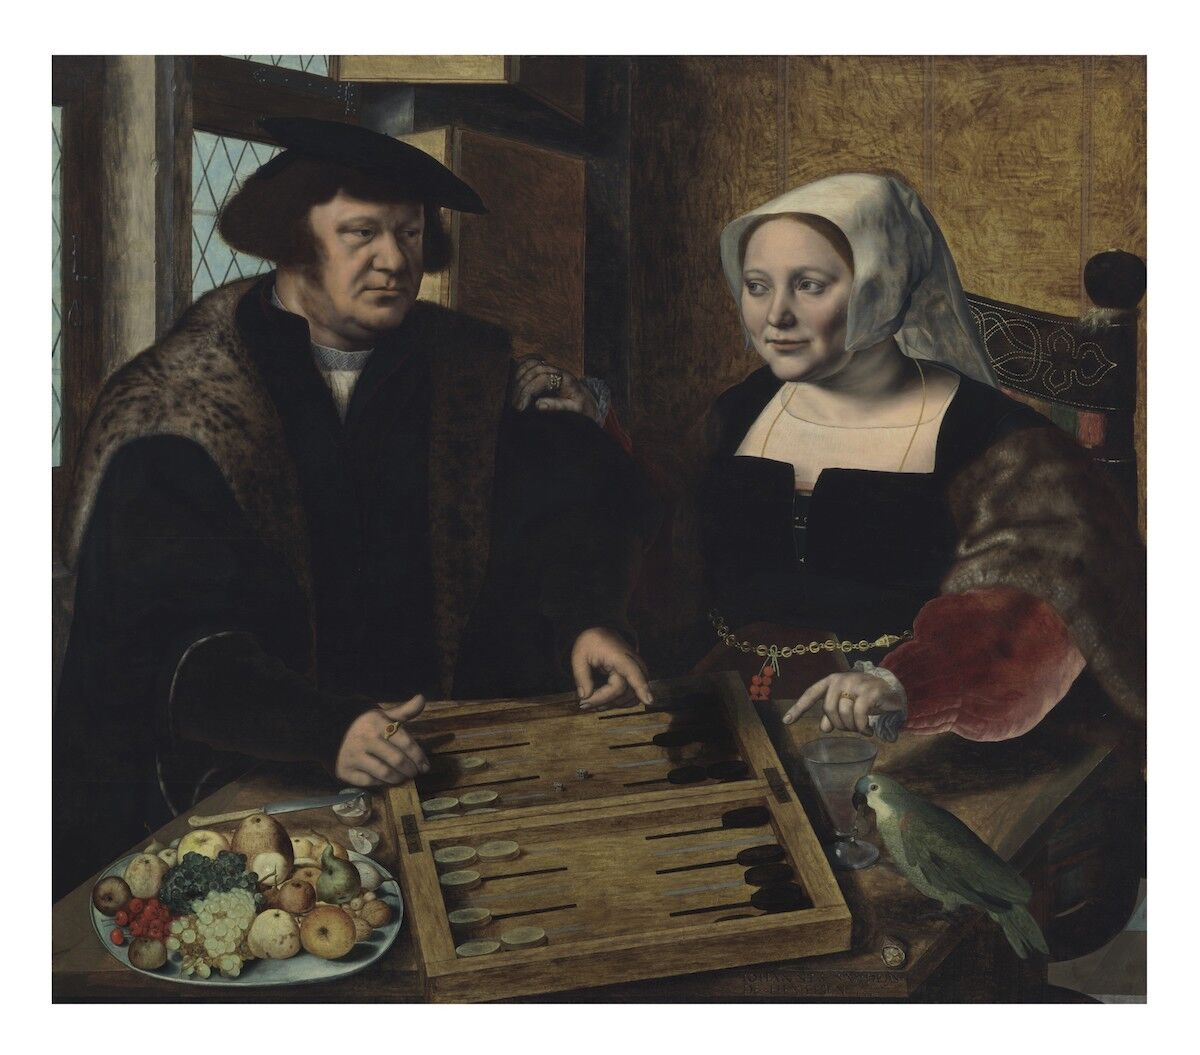 Jan Sanders van Hemessen, Double portrait of a husband and wife, half-length, seated at a table, playing tables, 1532, oil on panel. Courtesy Christie's.